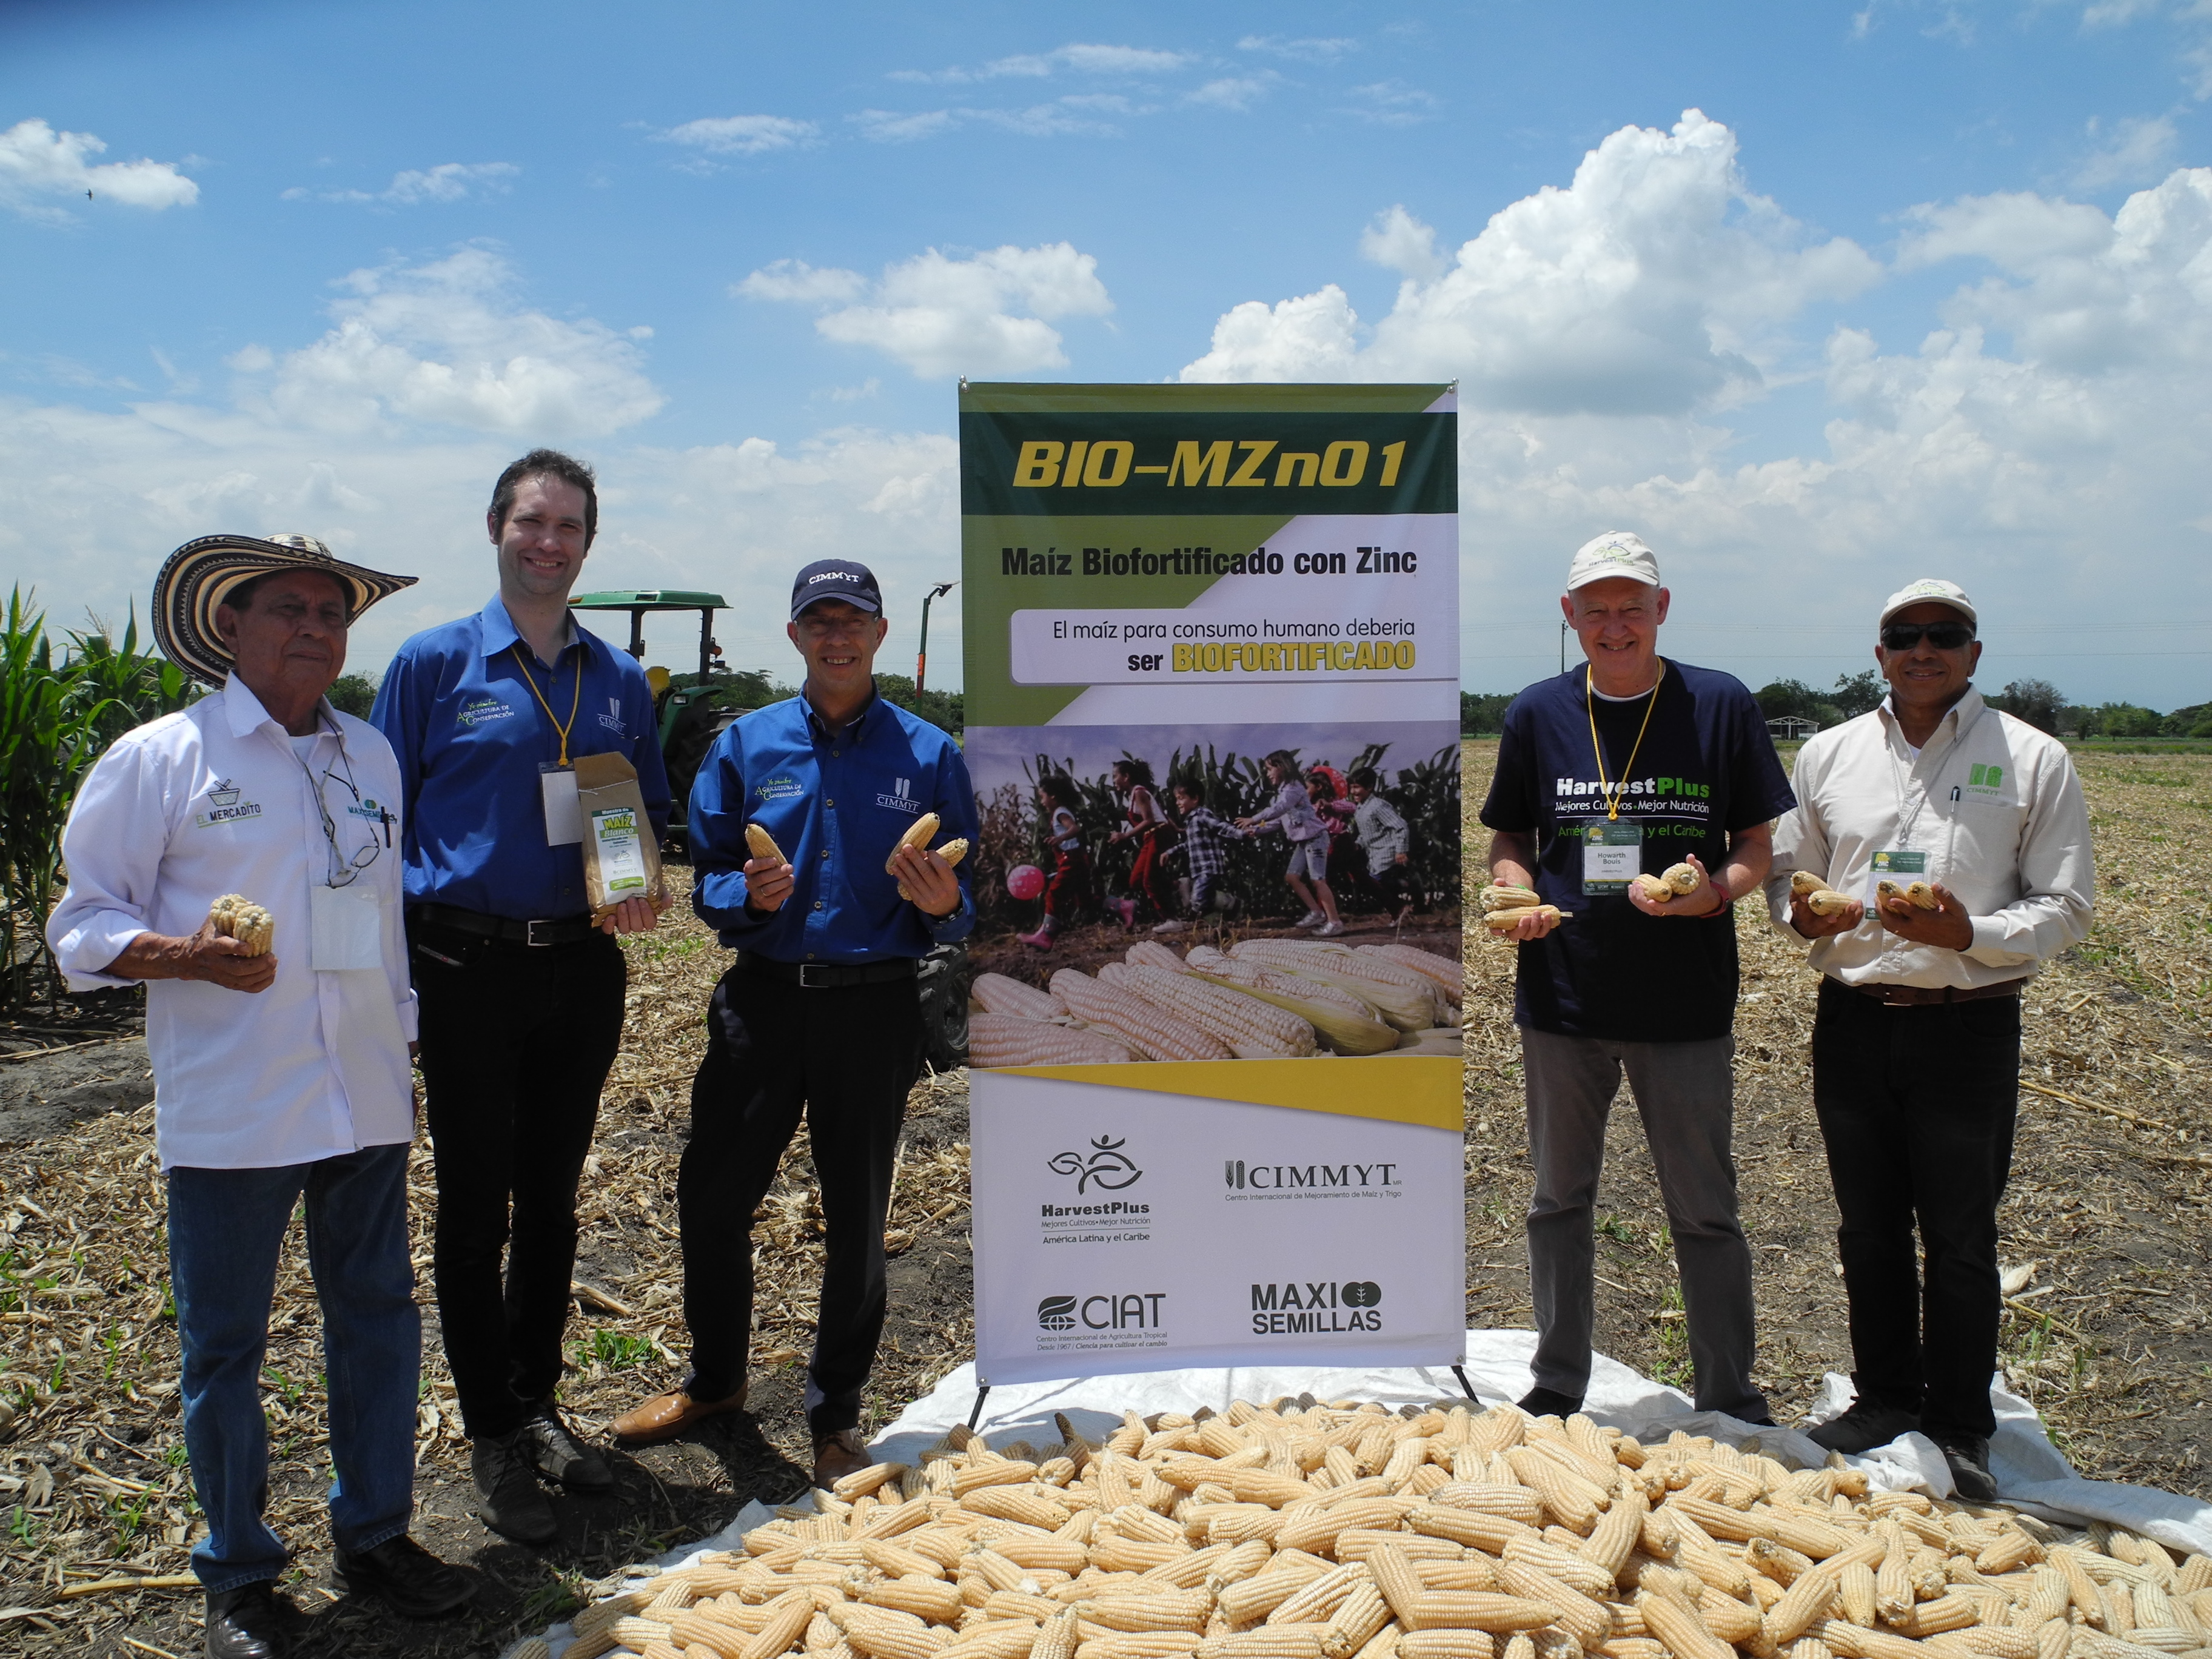 Left to right: Miguel Lengua, director general of Maxi Semillas S.A.S; Bram Govaerts, Latin America regional director at CIMMYT; Martin Kropff, CIMMYT director general; Howdy Bouis, interim HarvestPlus CEO; and Felix San Vicente, CIMMYT maize breeder; at the launch of new biofortified zinc maize. (Photo: Jennifer Johnson/CIMMYT)